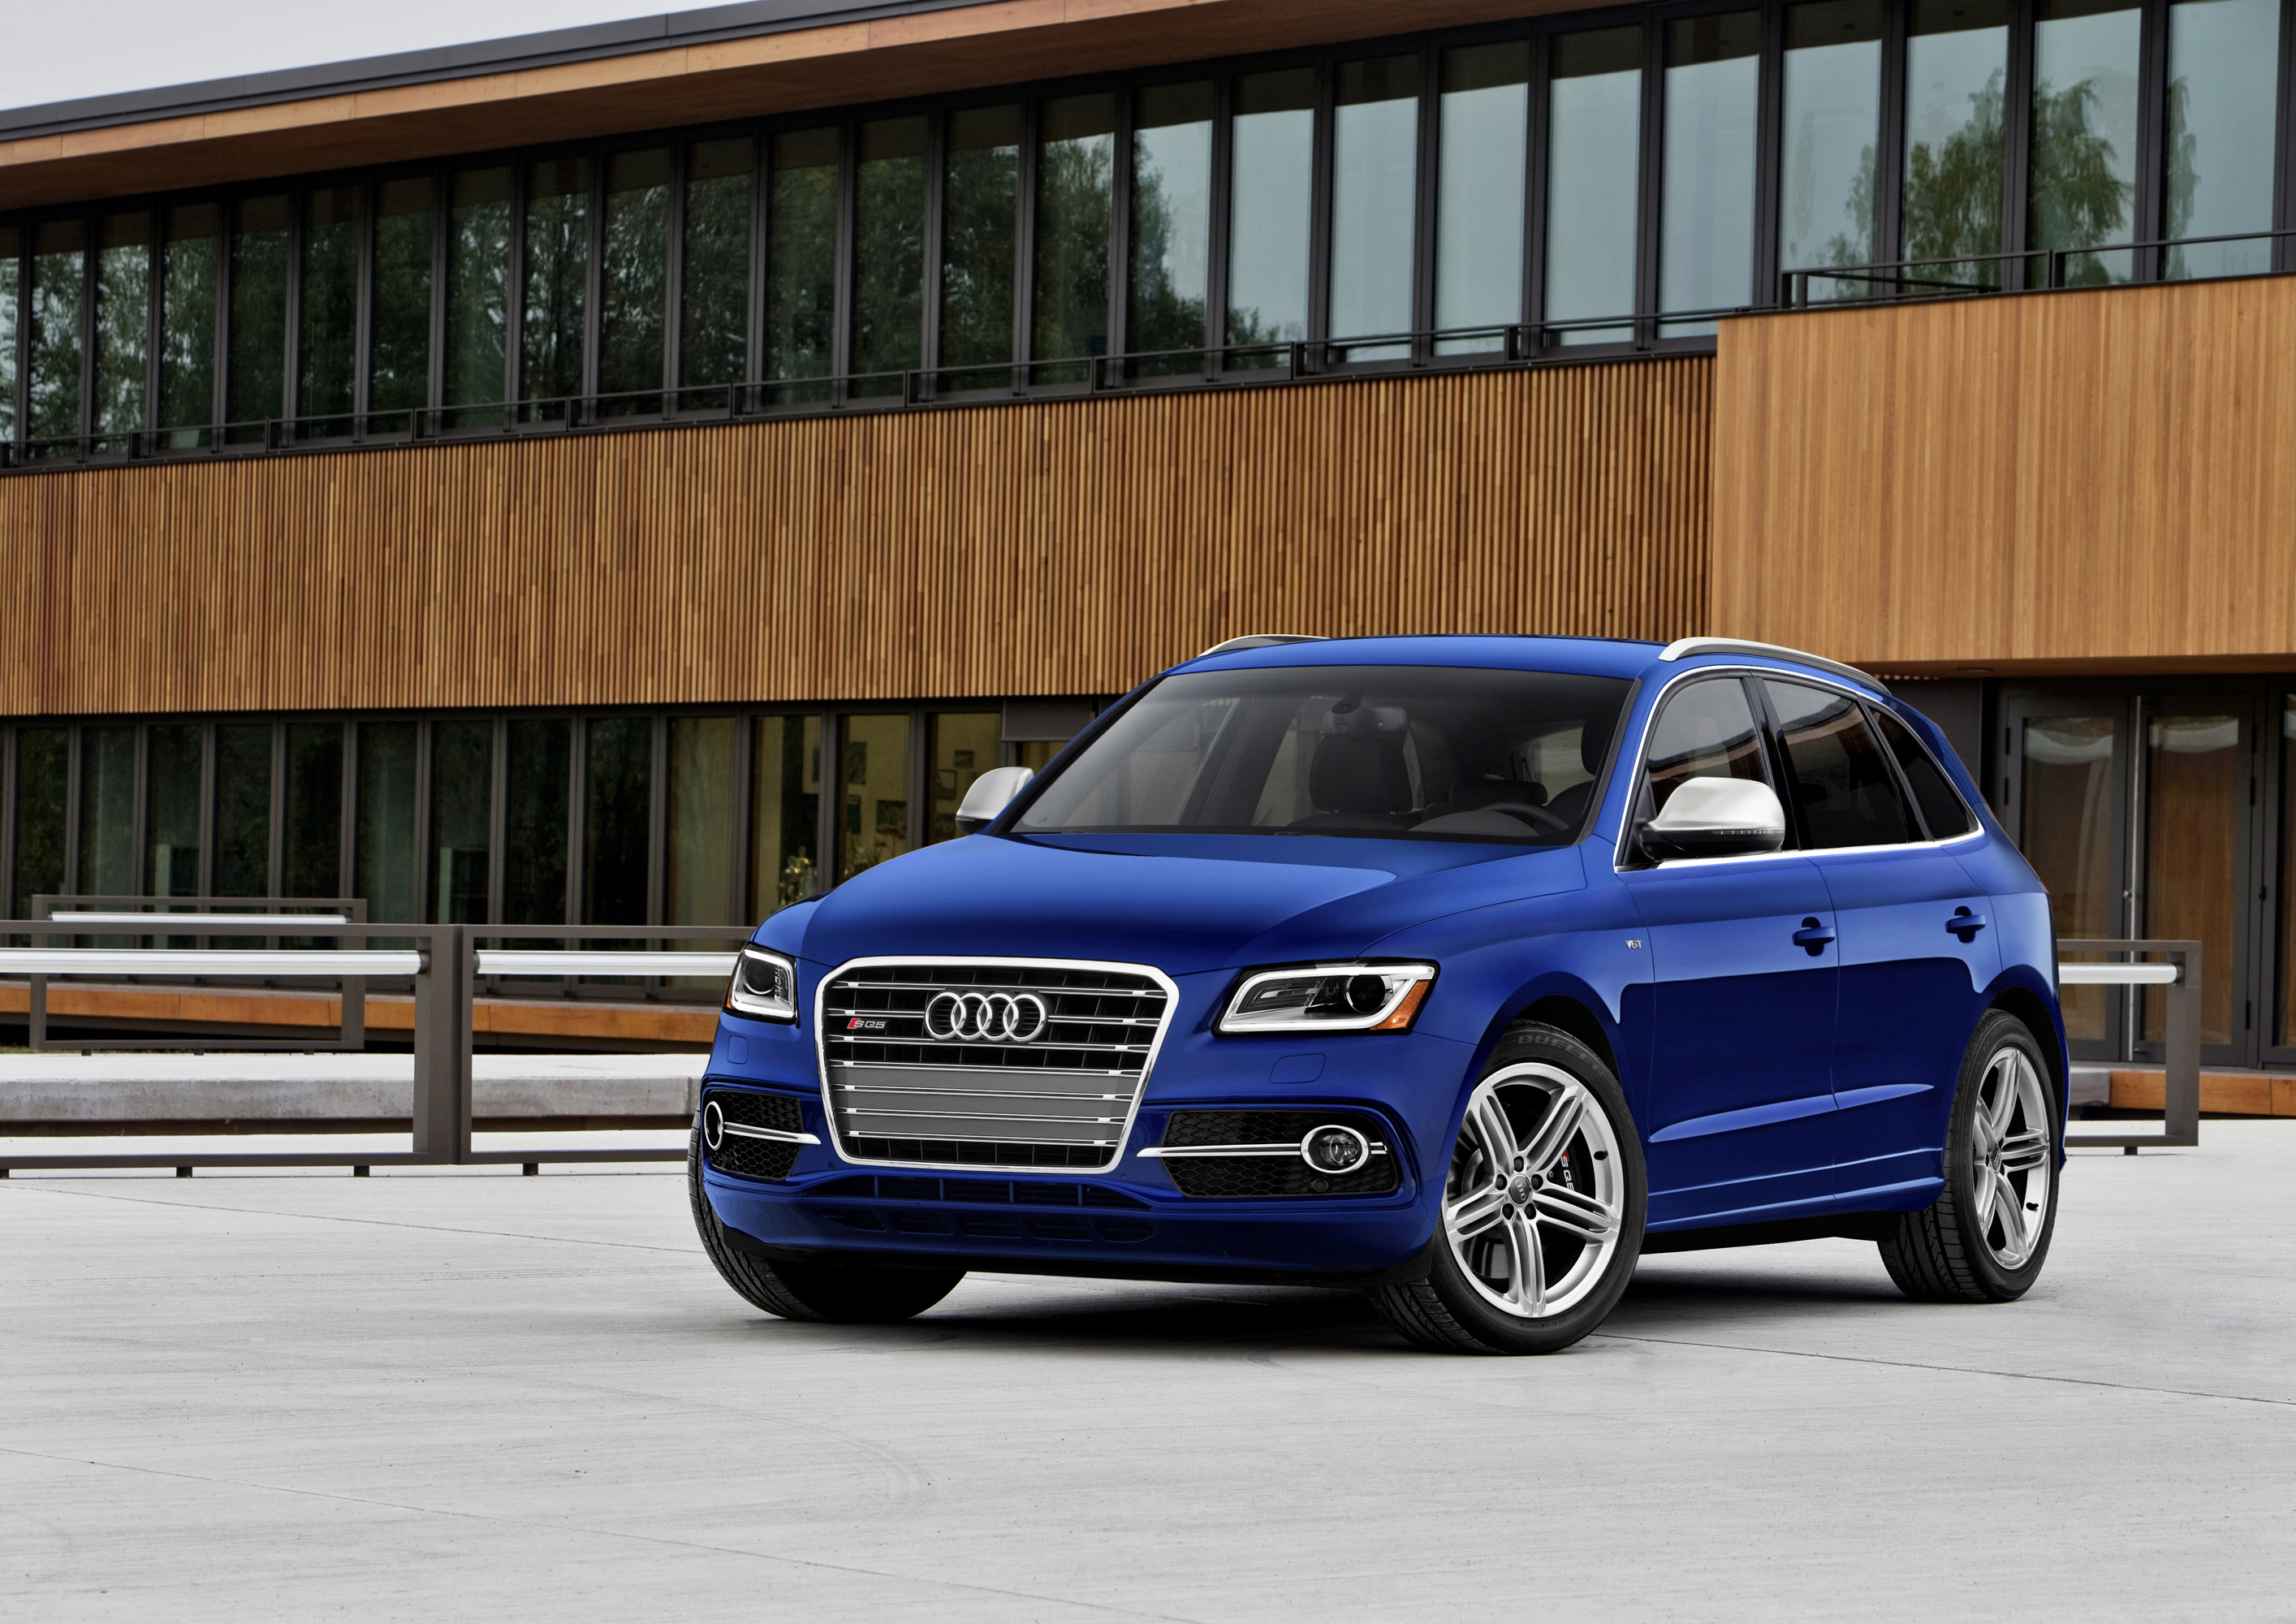 audi the new uk latest rear retake to news about in price all ready lead